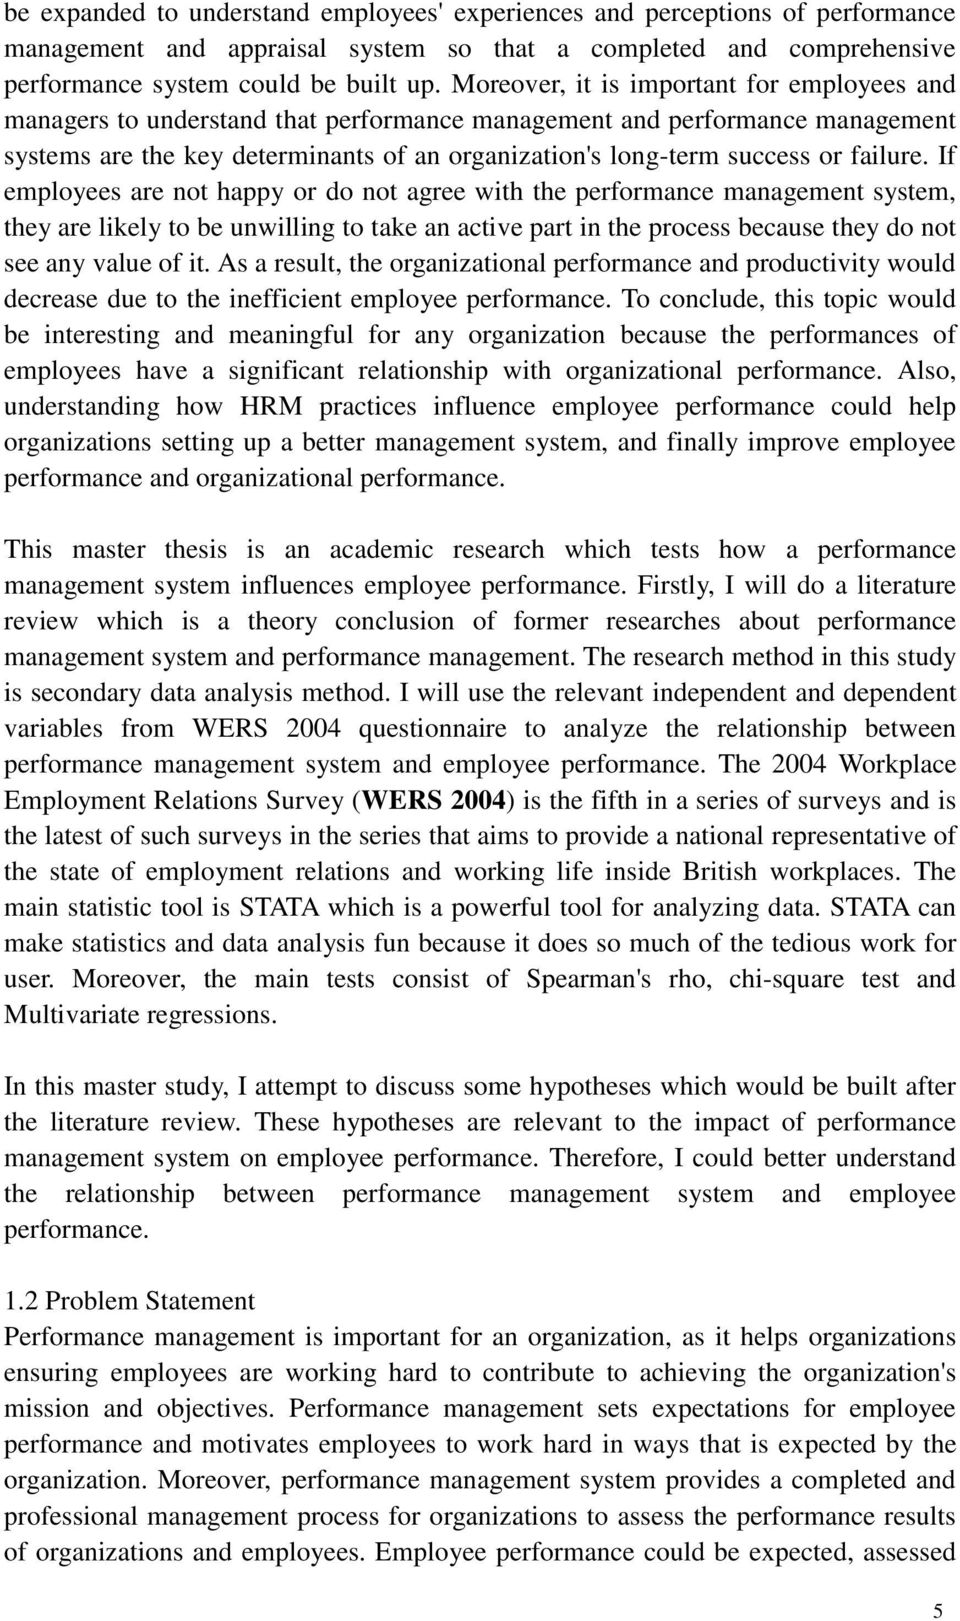 thesis performance management